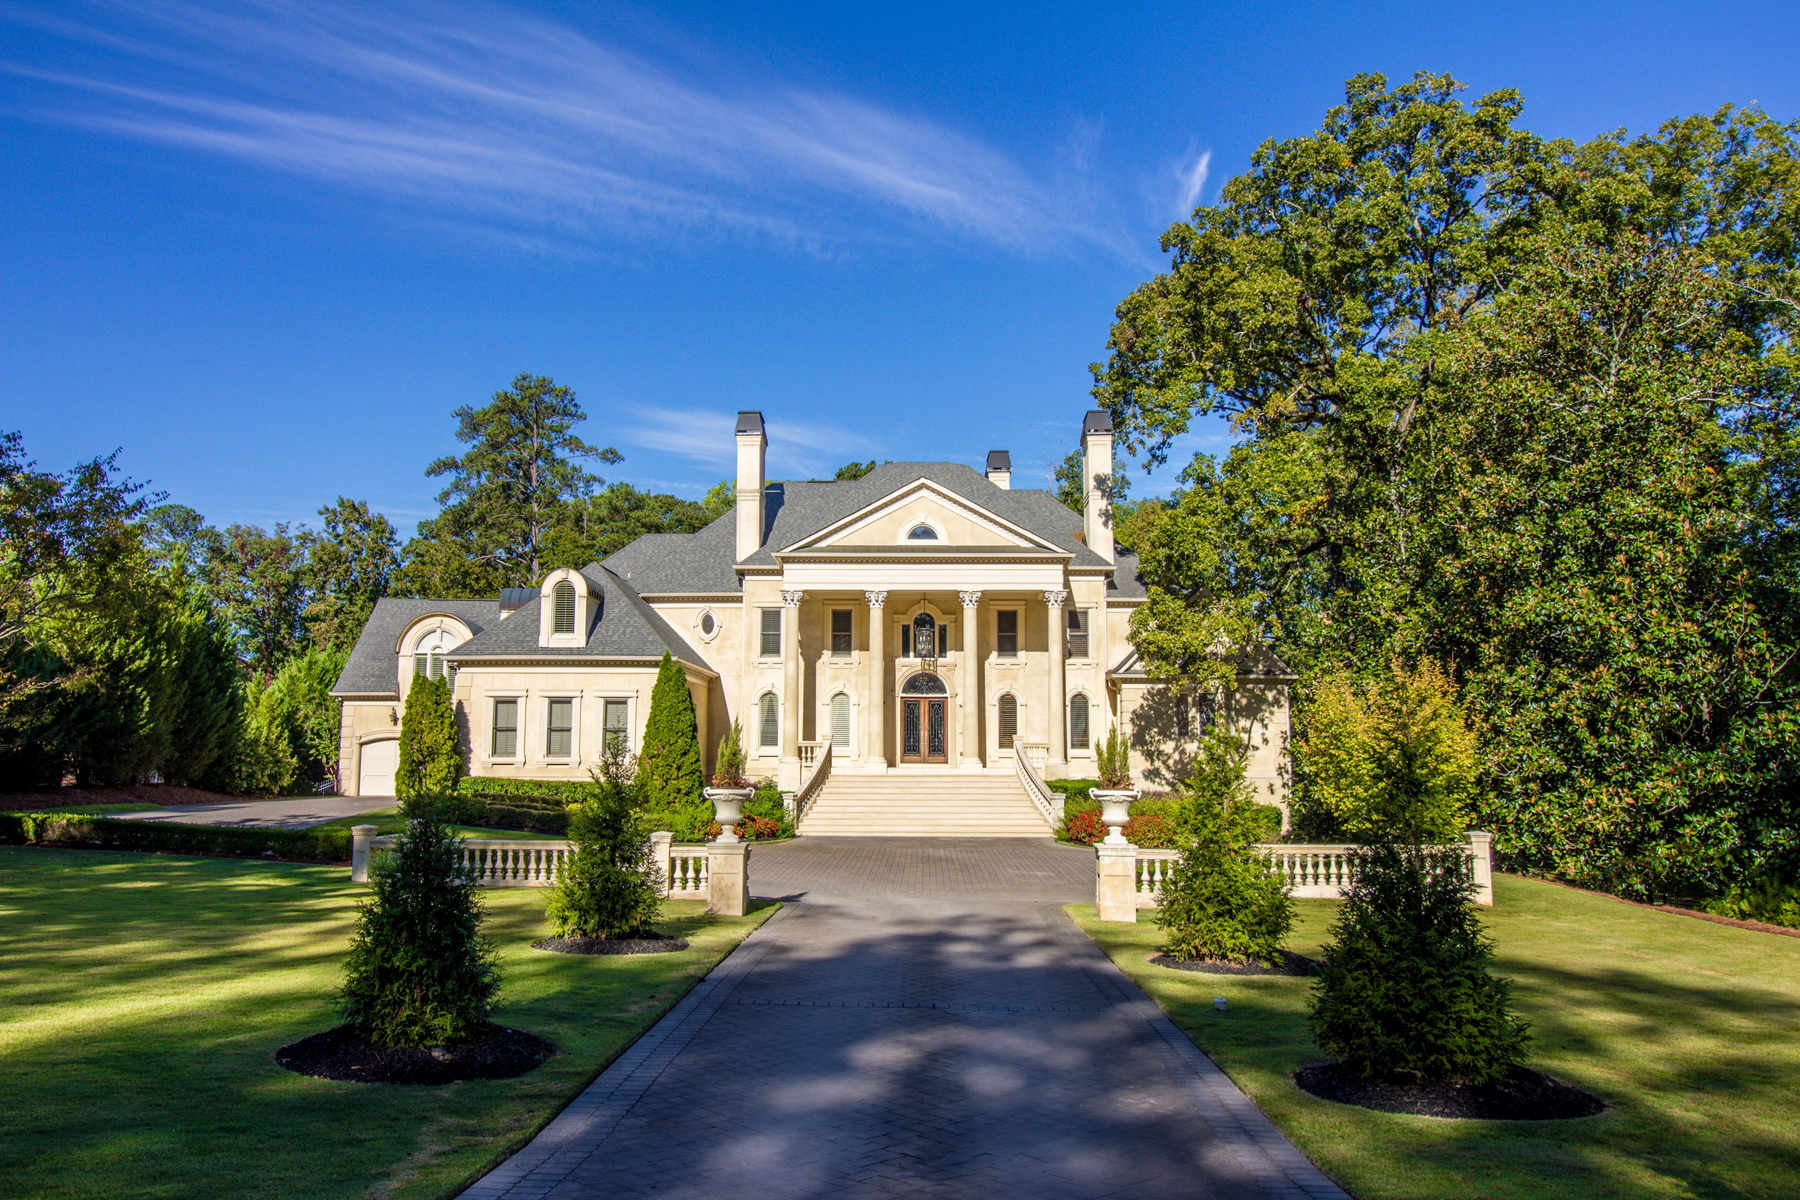 Single Family Home for Sale at Incomparable Neoclassical Estate In The Heart Of Buckhead 1495 Mount Paran Road NW Buckhead, Atlanta, Georgia, 30327 United States